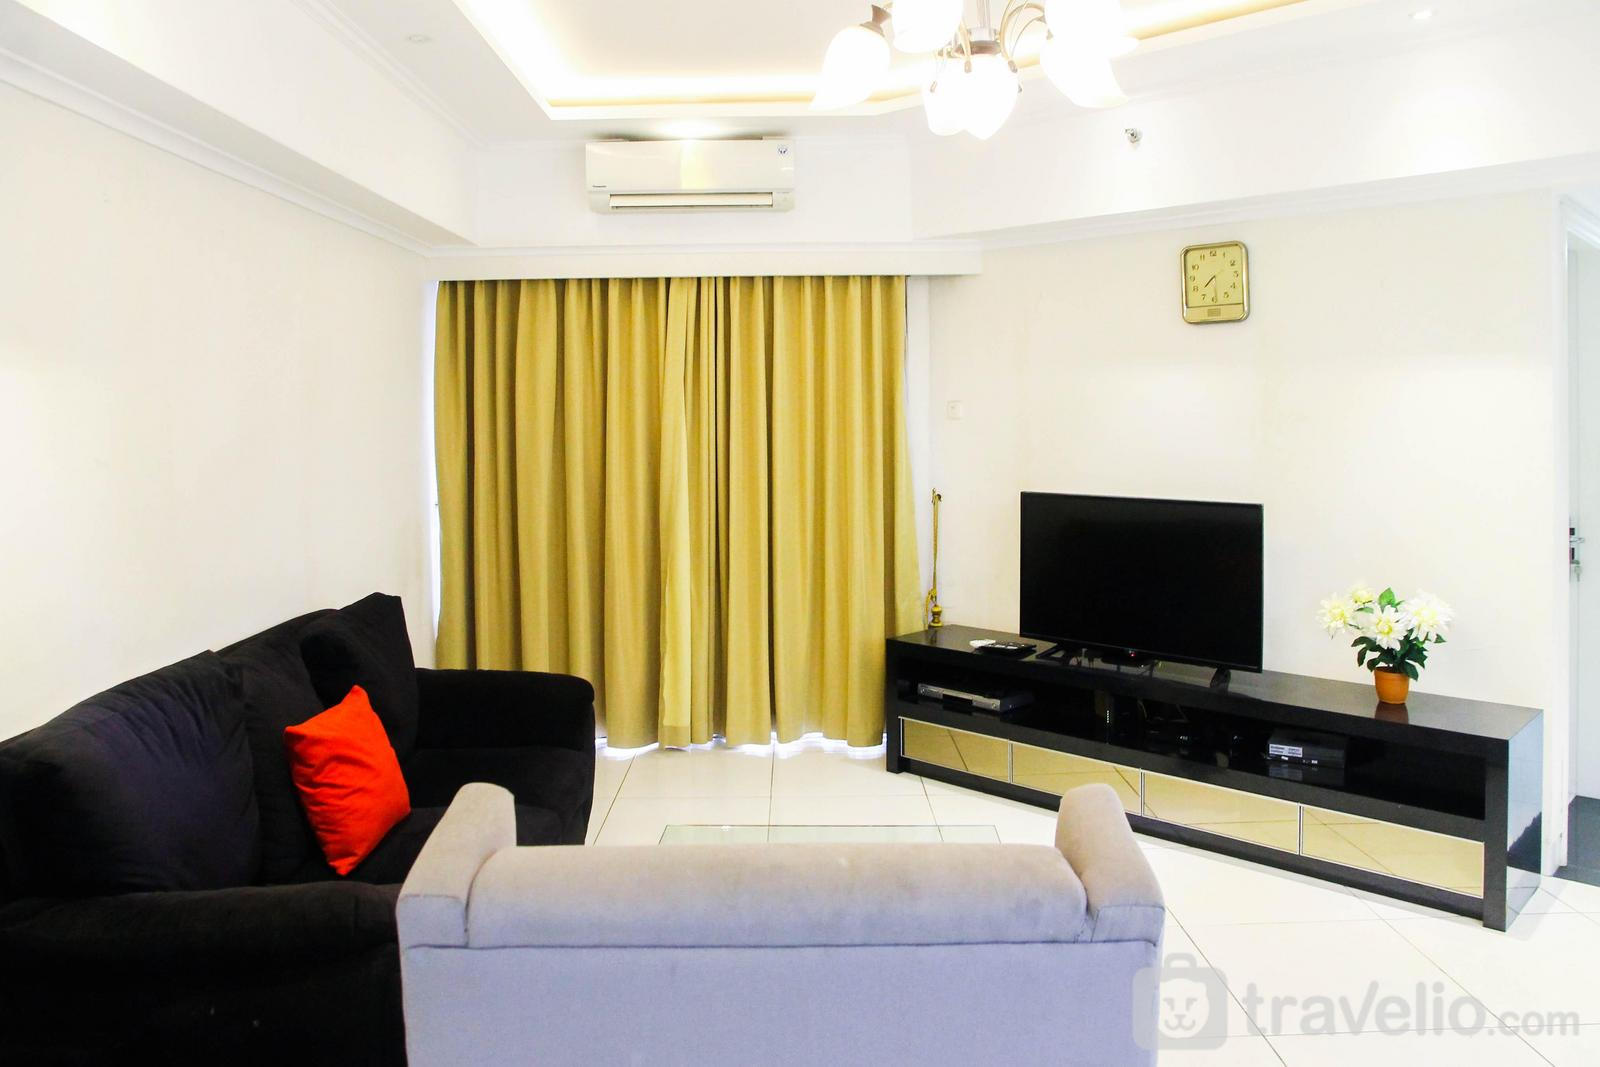 Sudirman Tower Condominium - 3BR City View Sudirman Condominium Apartment by Travelio